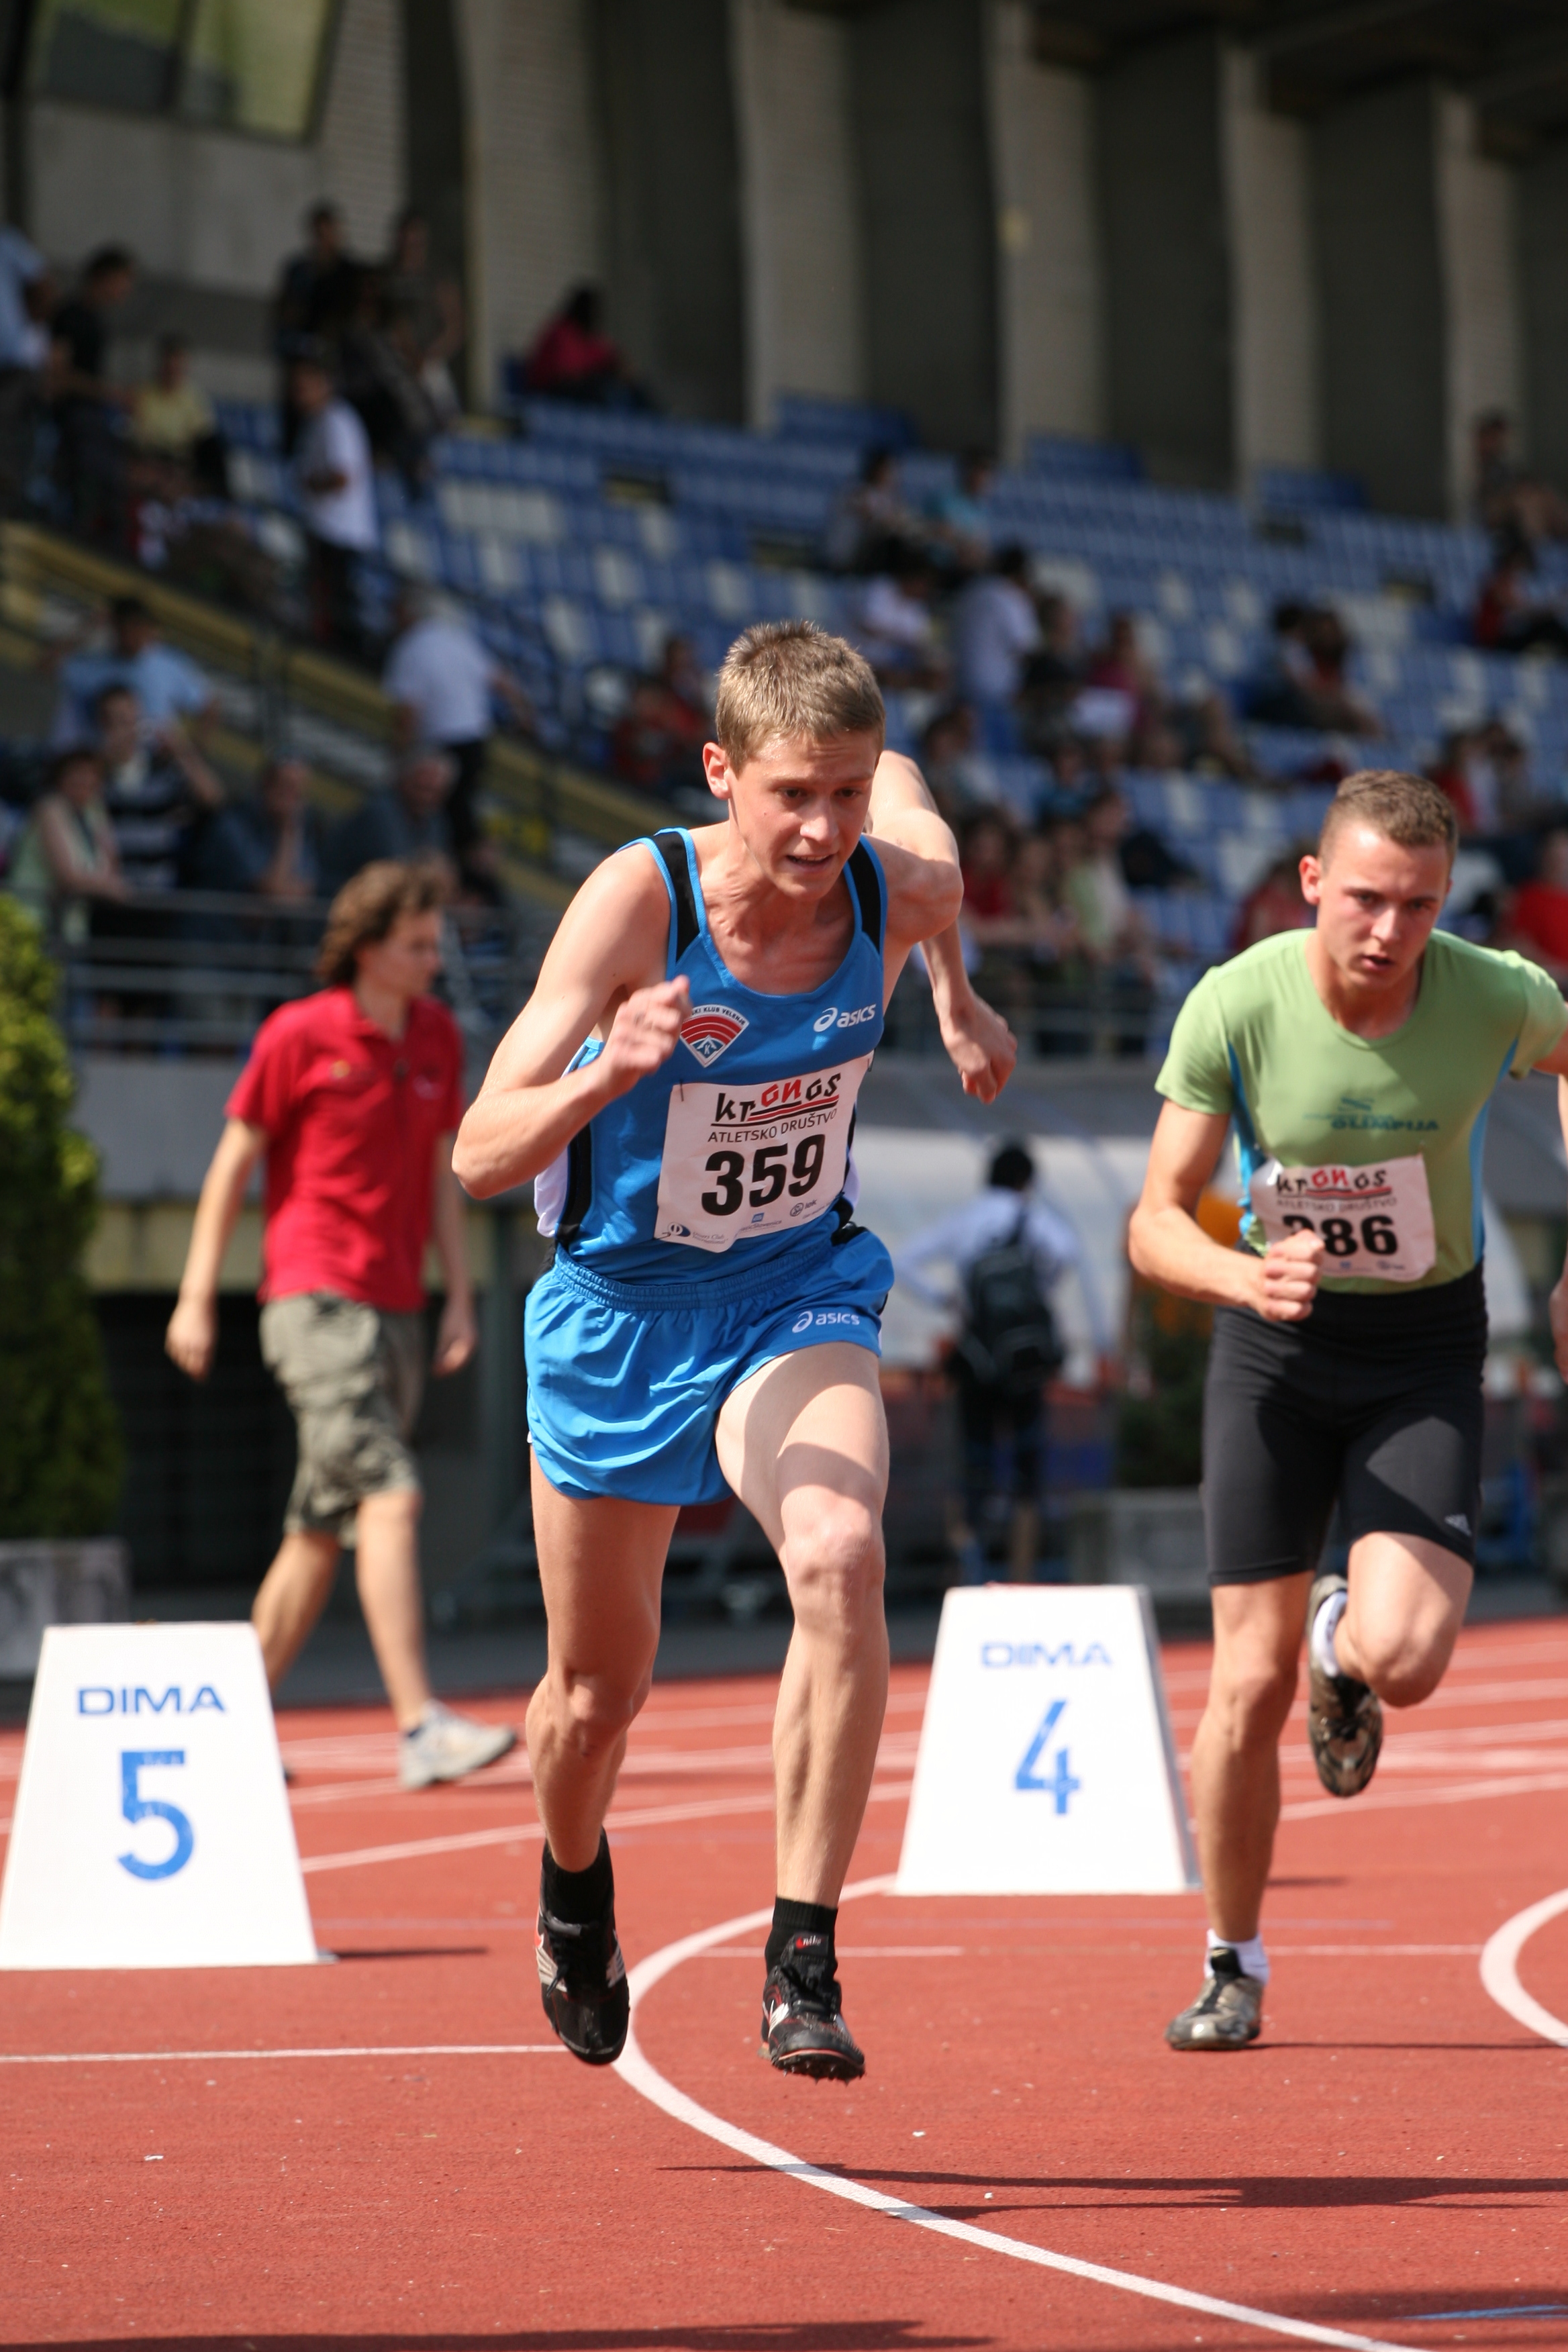 Me at 800m race start in 2009